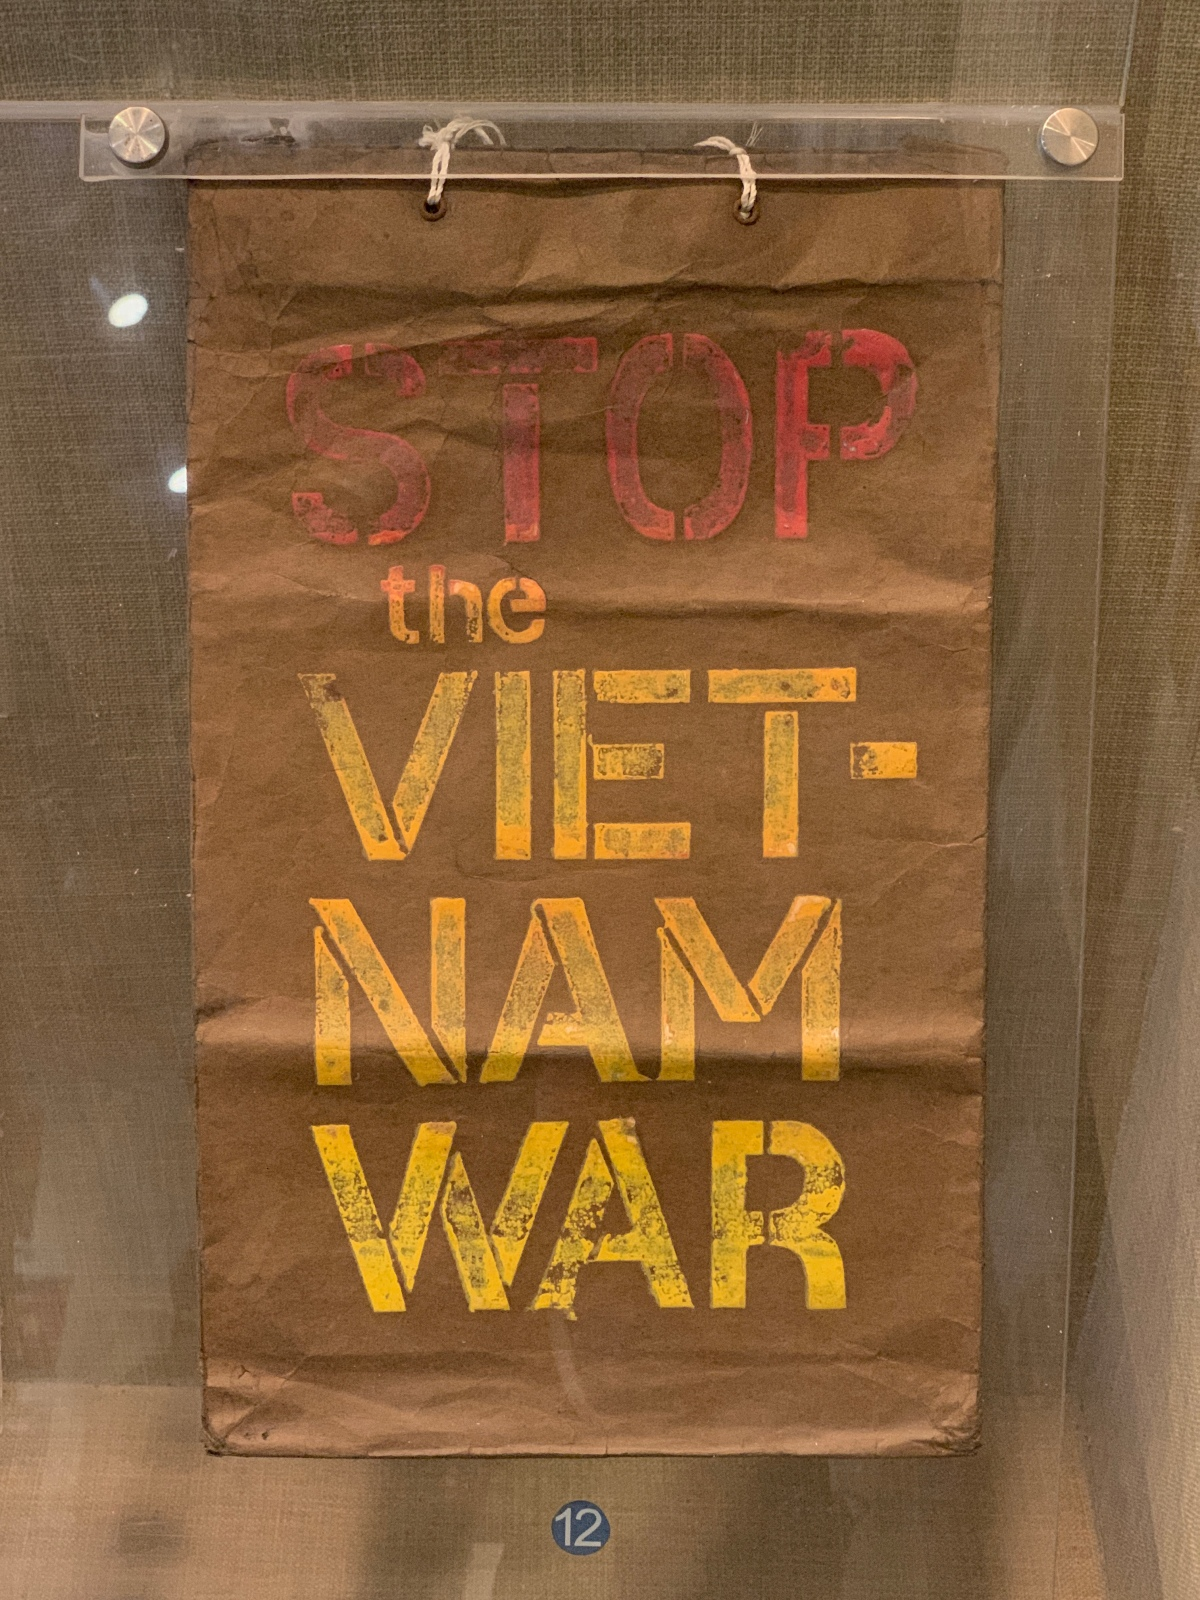 2019-05-17 Vietnam iPhone Photos 030